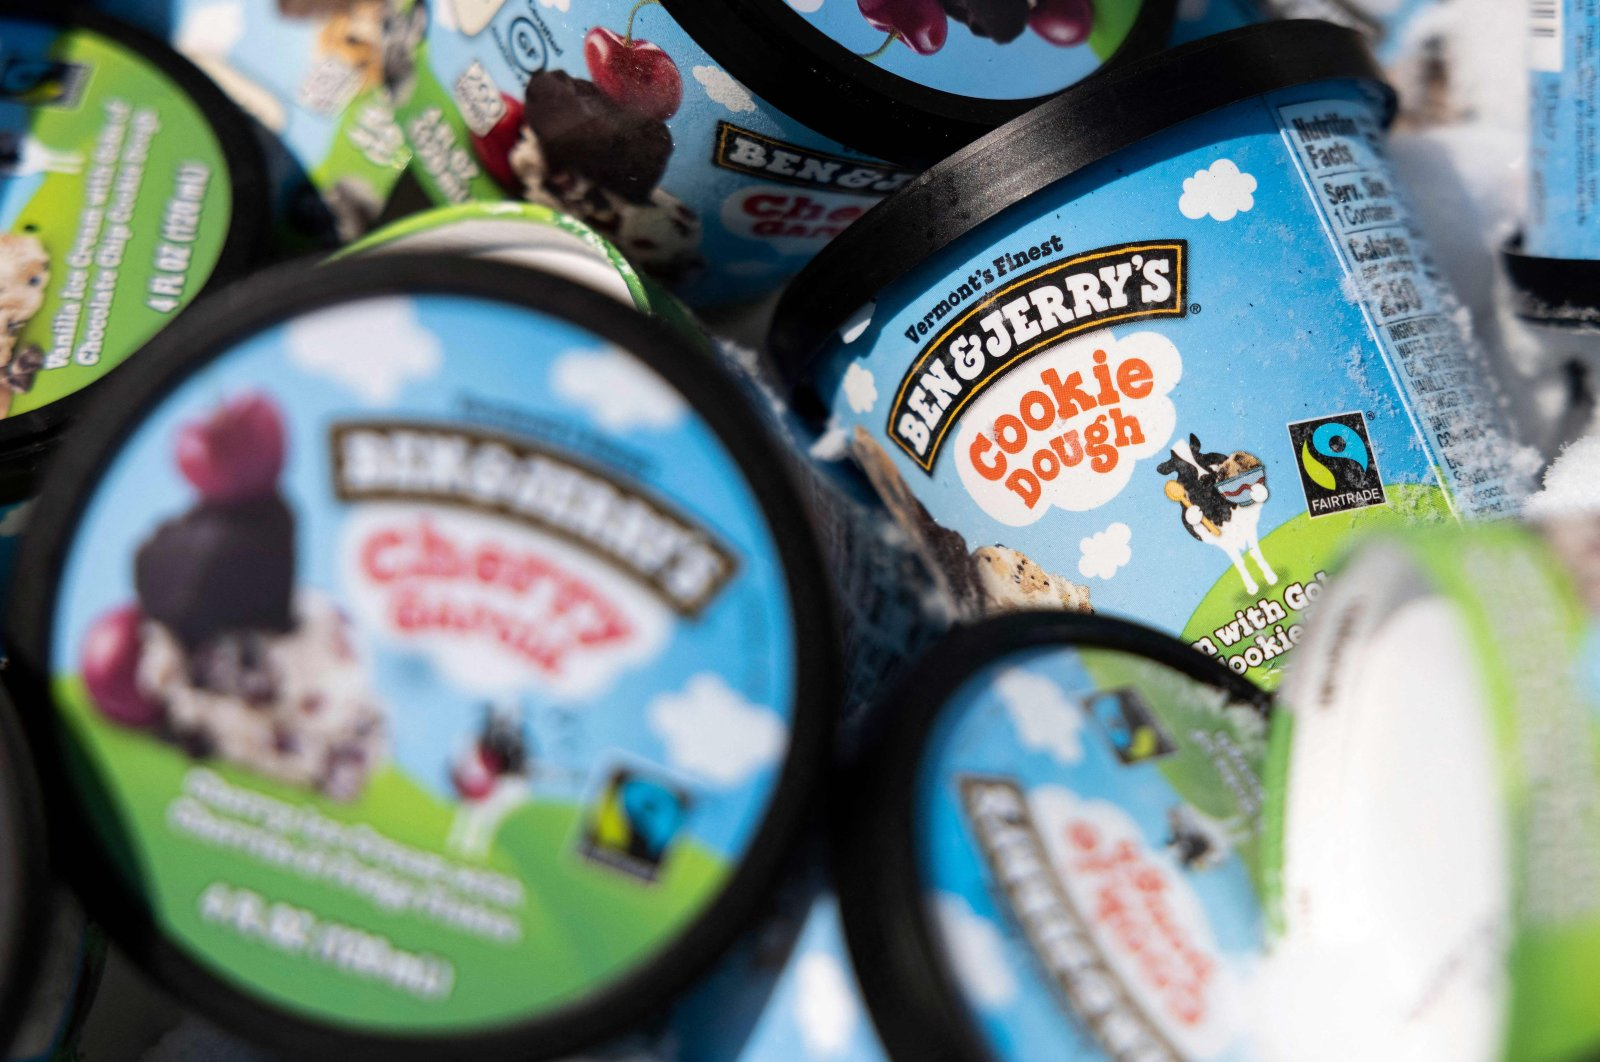 Ben and Jerry's ice cream is stored in a cooler at an event where founders Jerry Greenfield and Ben Cohen gave away ice cream to bring attention to police reform at the U.S. Supreme Court in Washington, D.C., U.S., May 19, 2021. (AFP File Photo)